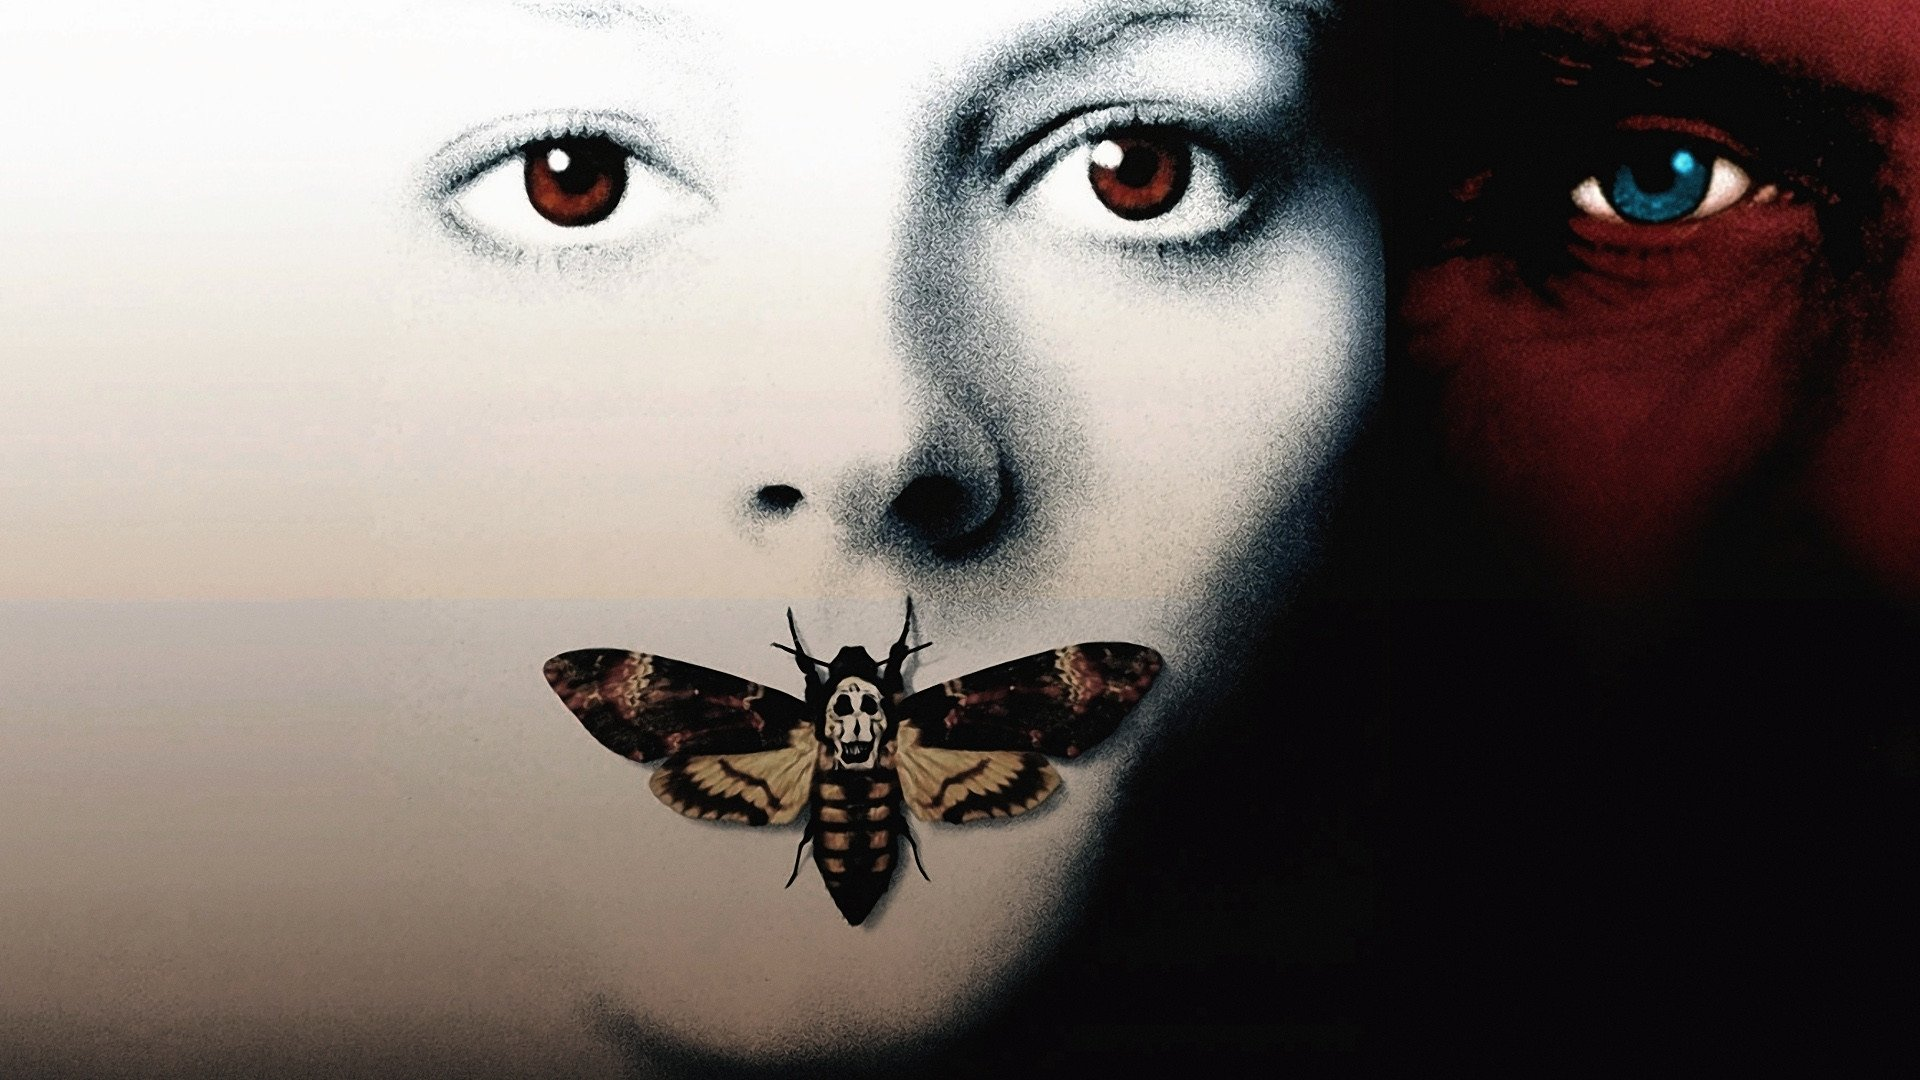 The Silence Of The Lambs wallpapers 1920x1080 Full HD 1080p 1920x1080